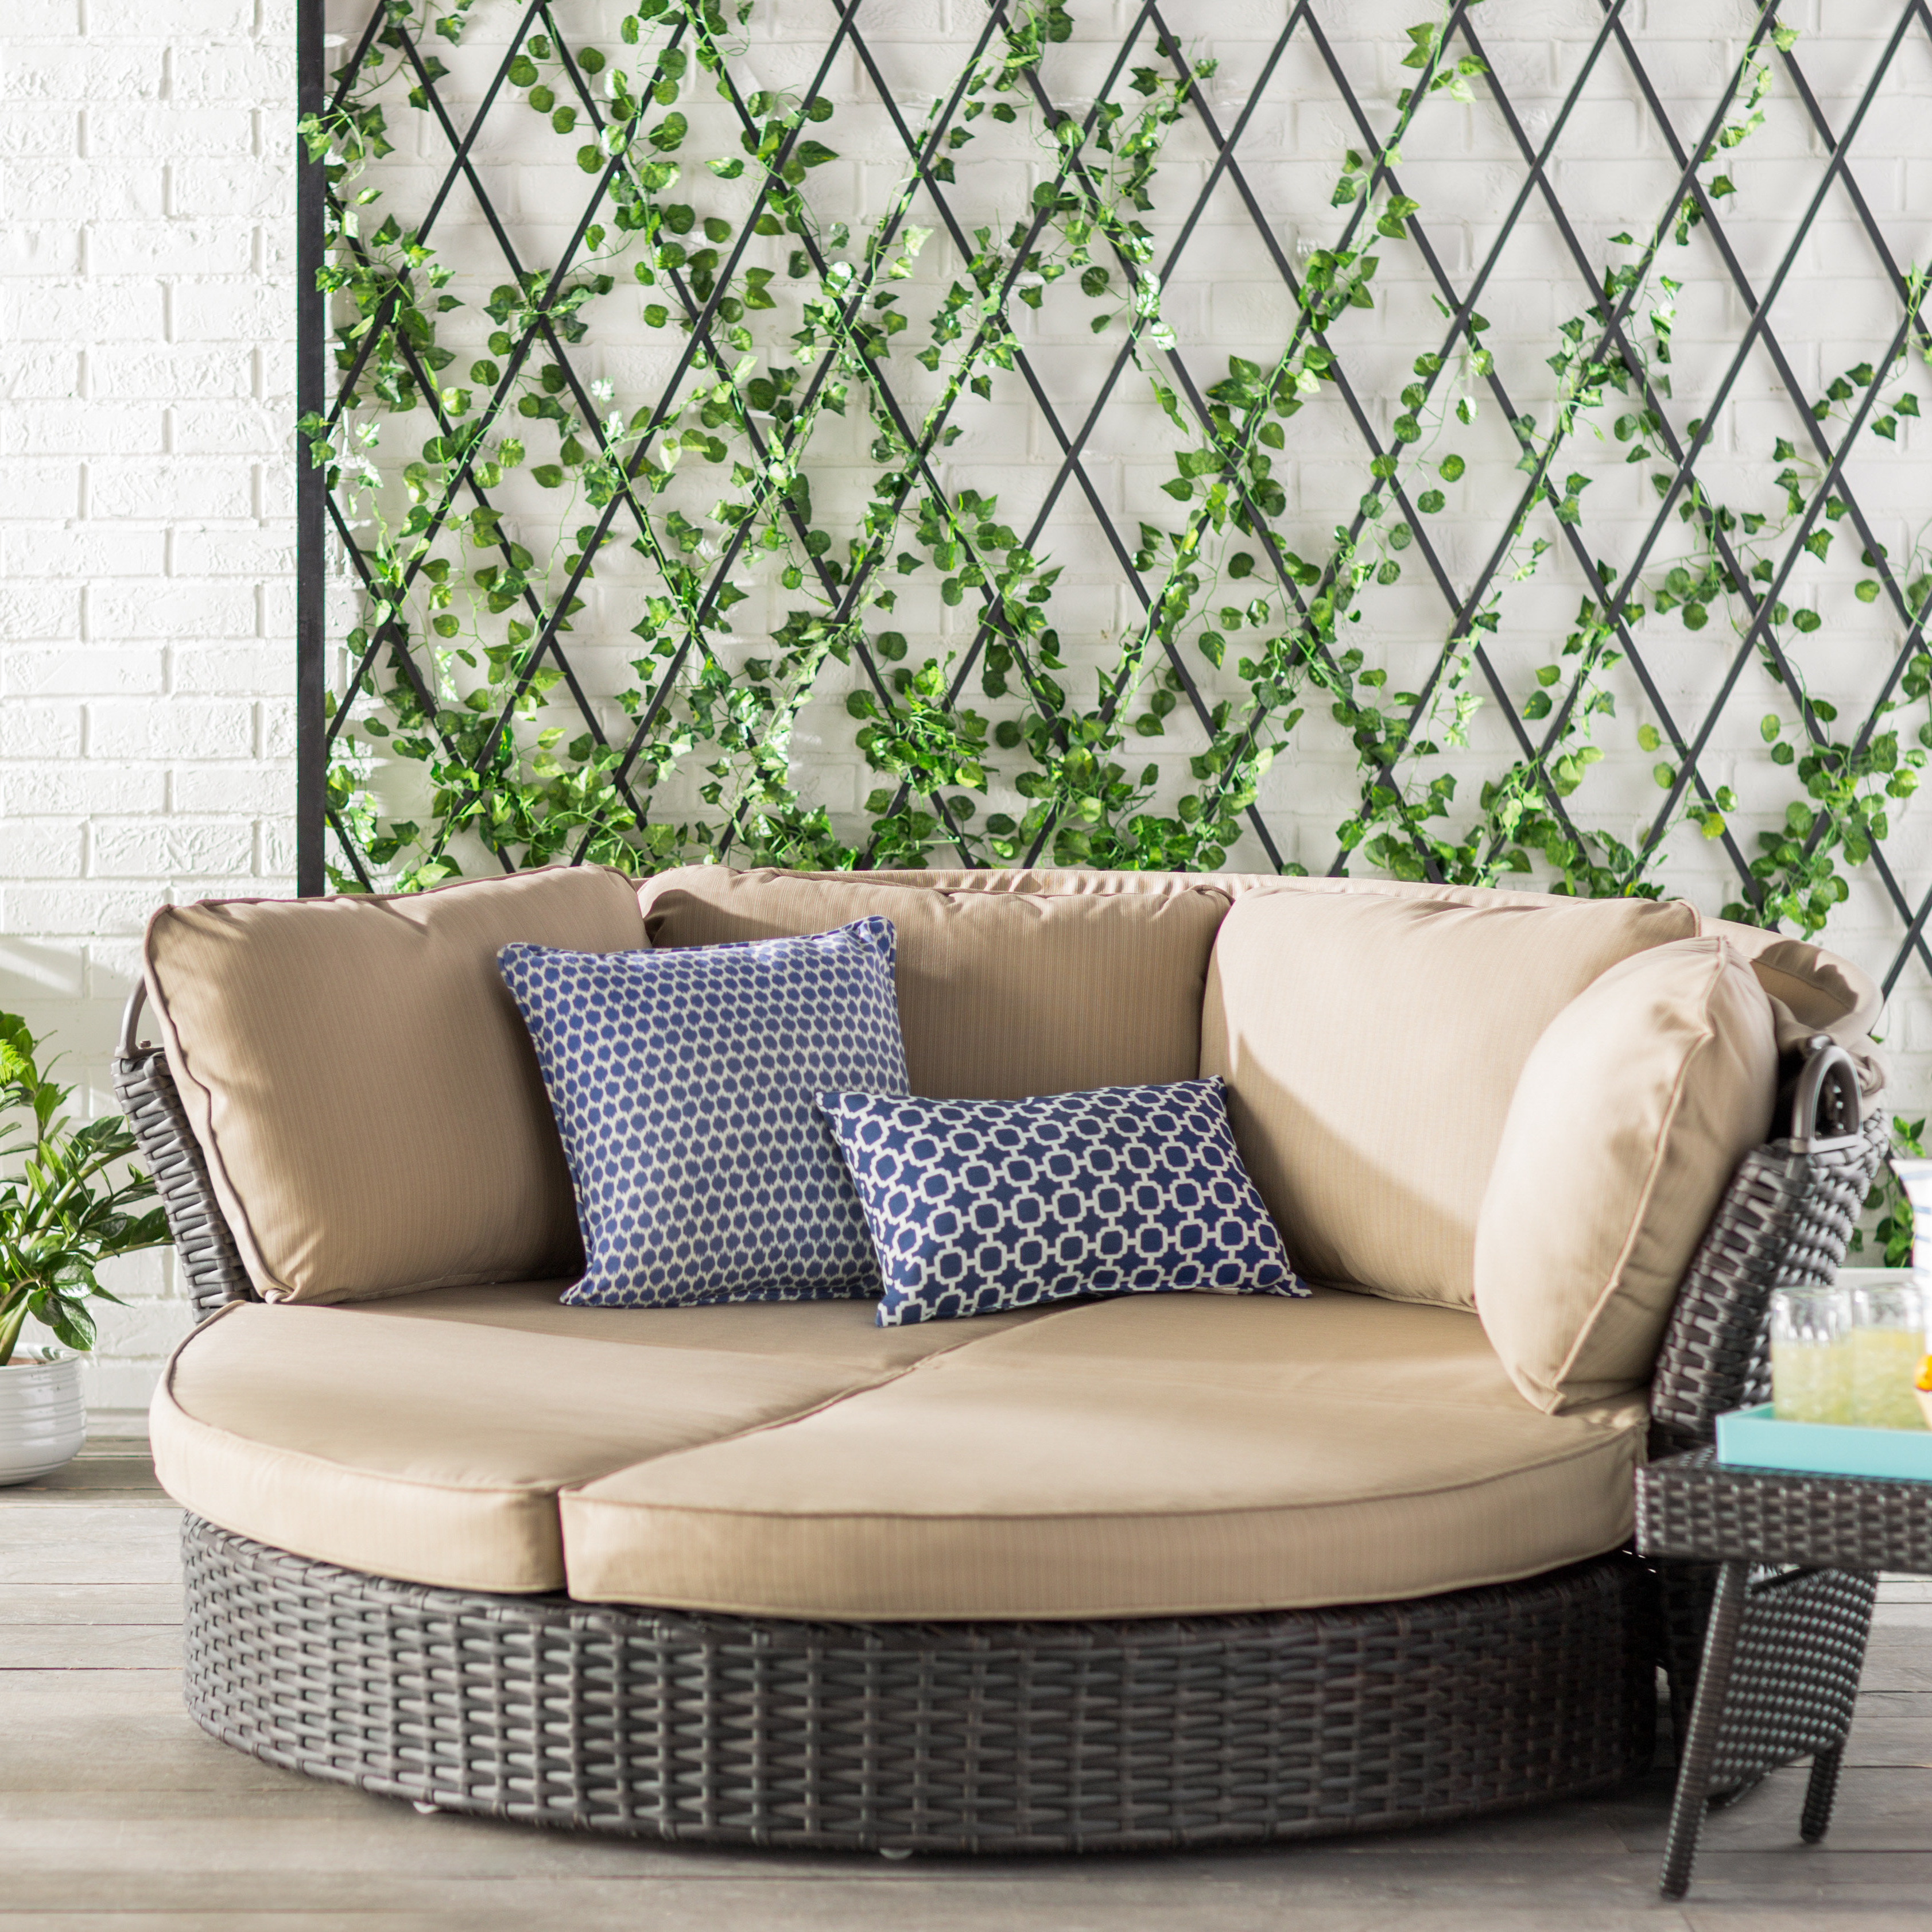 Tiana Patio Daybed With Cushions Regarding Widely Used Lavina Outdoor Patio Daybeds With Cushions (View 19 of 20)